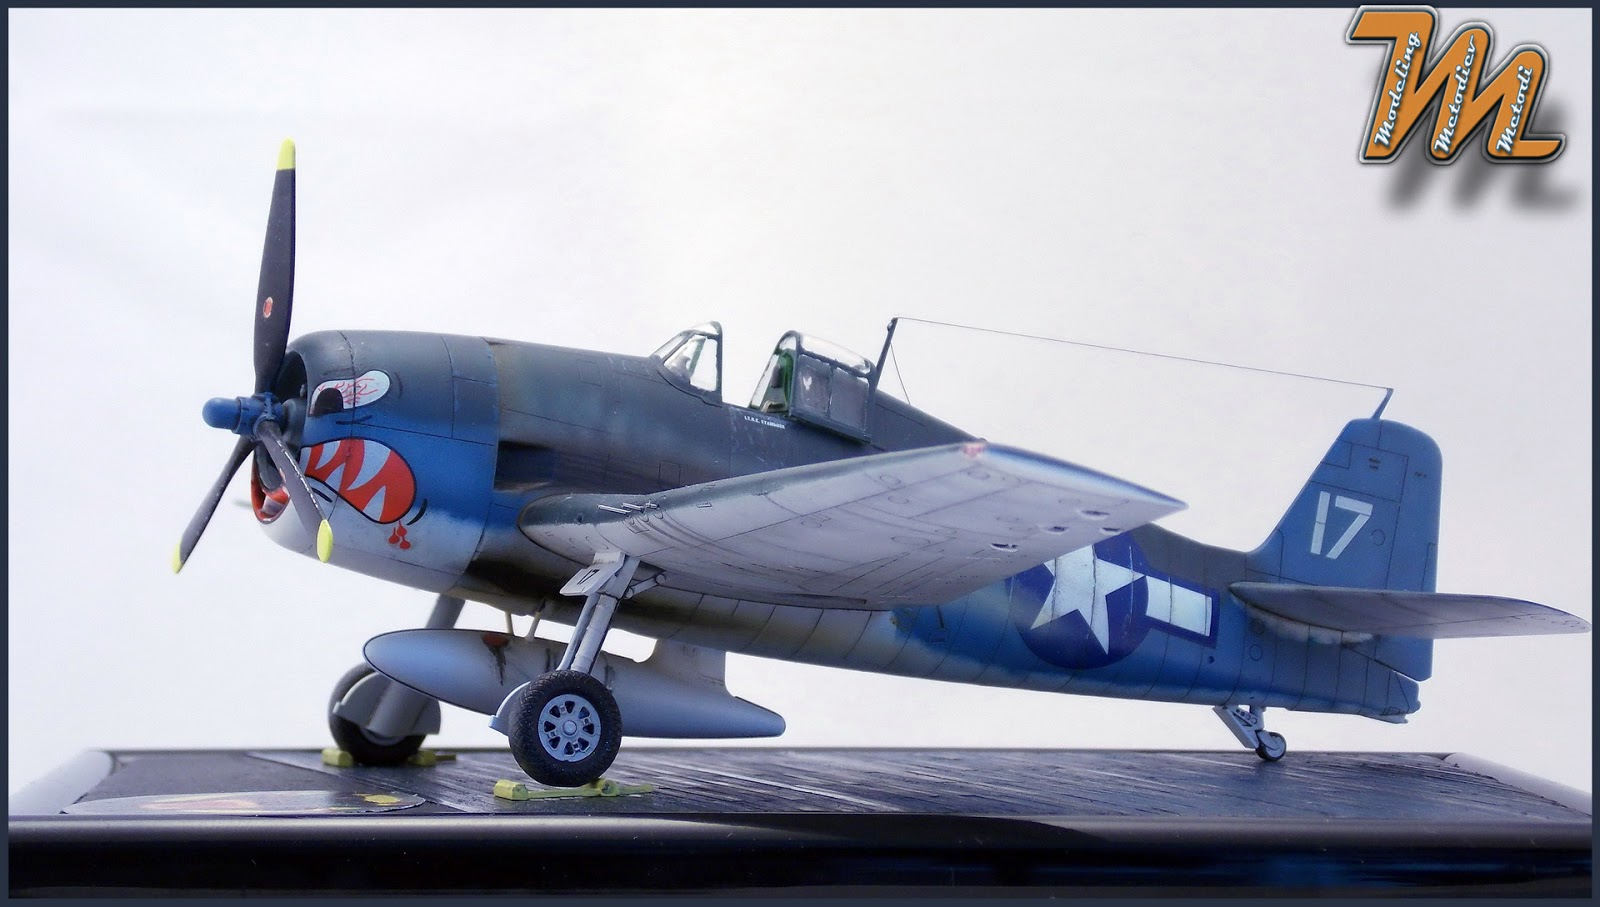 F6F-3, Hellcat, VF-2, scale model